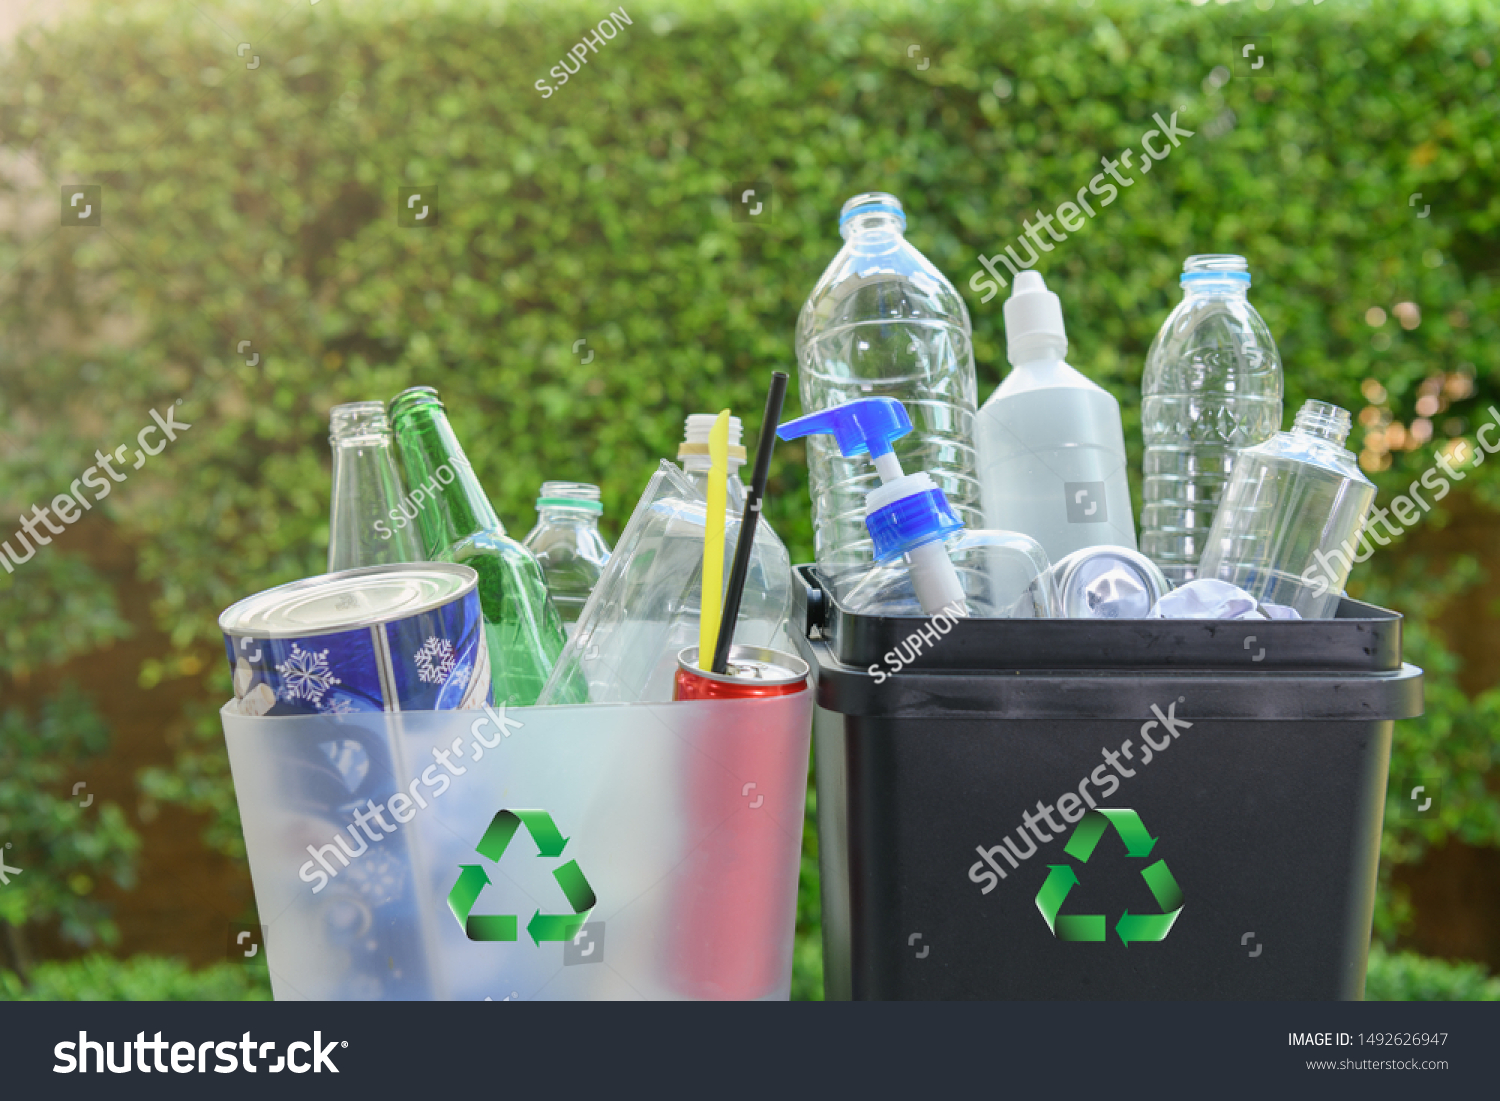 Close up plastic and  glass bottle in the bins for separating recycle materials from the garbages. Reducing waste by following the green concept. Recycling process. #1492626947